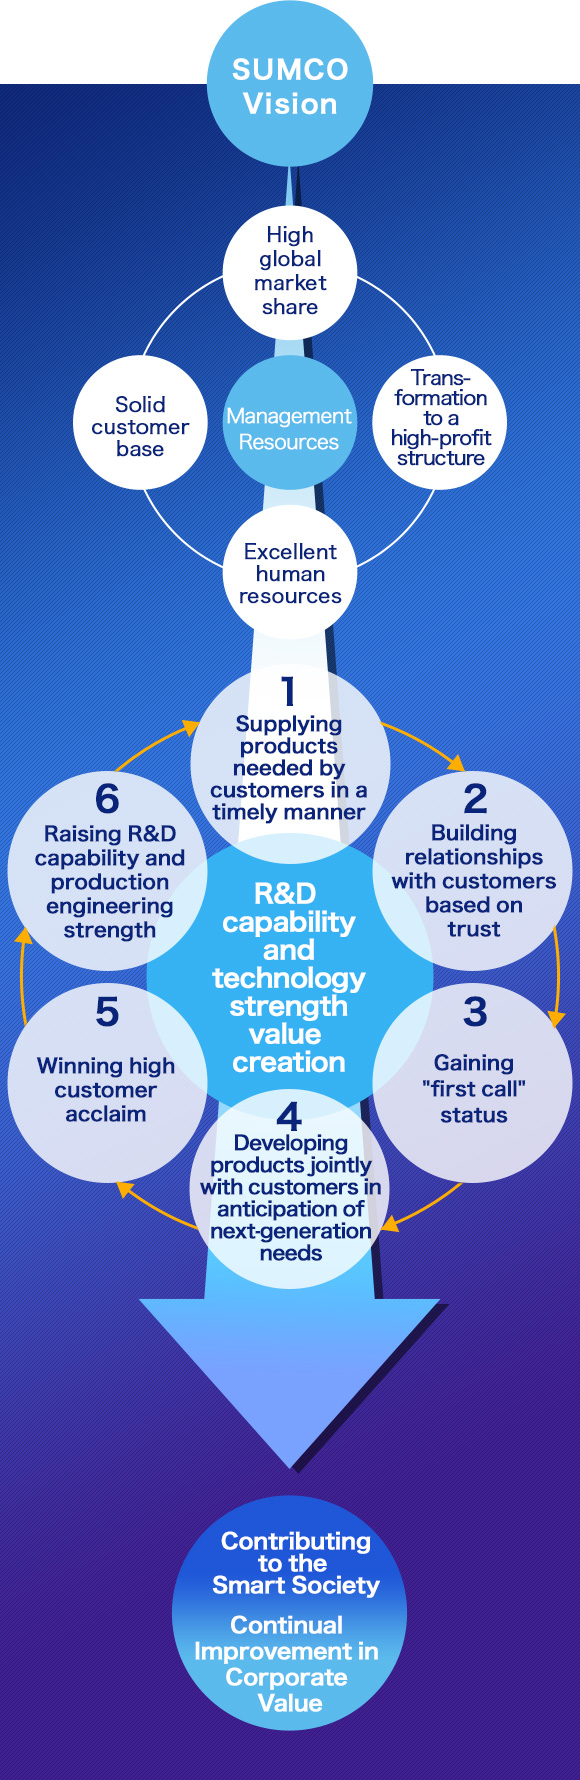 SUMCO Vision Management Resources R&D capability and technology strength Continual Improvement in Corporate Value